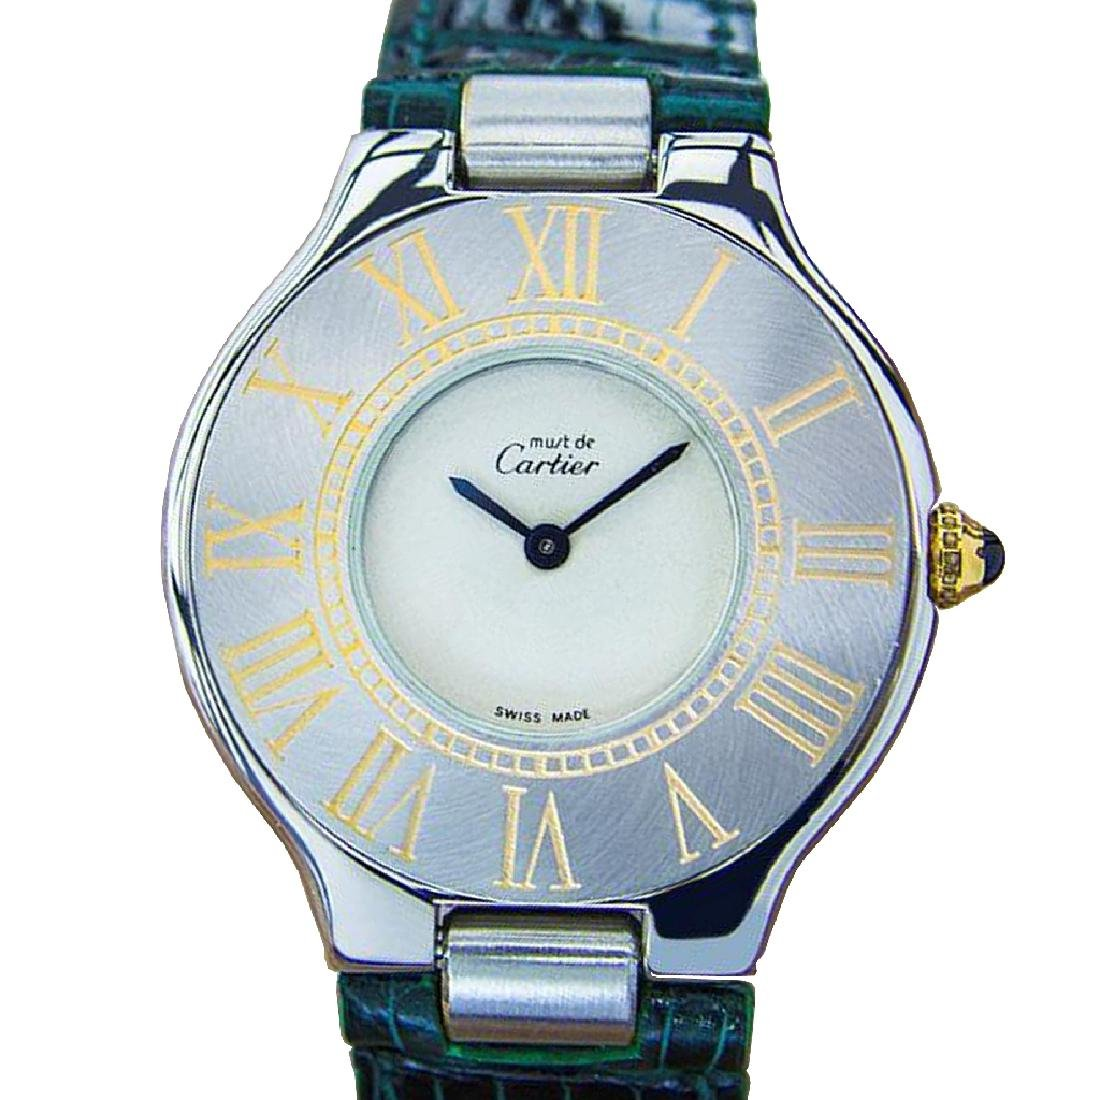 *Must De Cartier 21 Quartz Stainless Steel Swiss Luxury